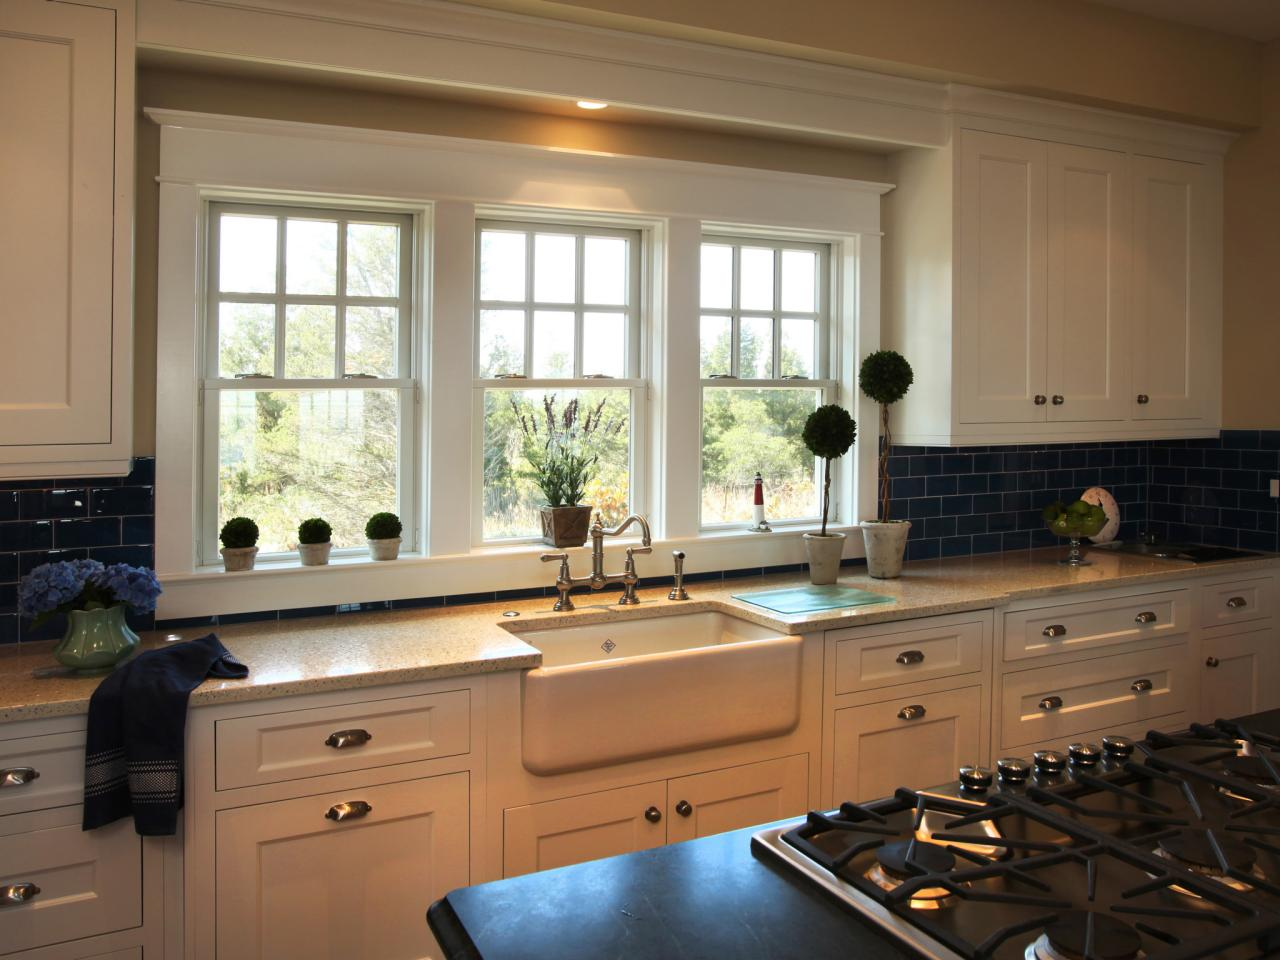 Kitchen window ideas pictures ideas tips from hgtv hgtv for Kitchen ideas no window